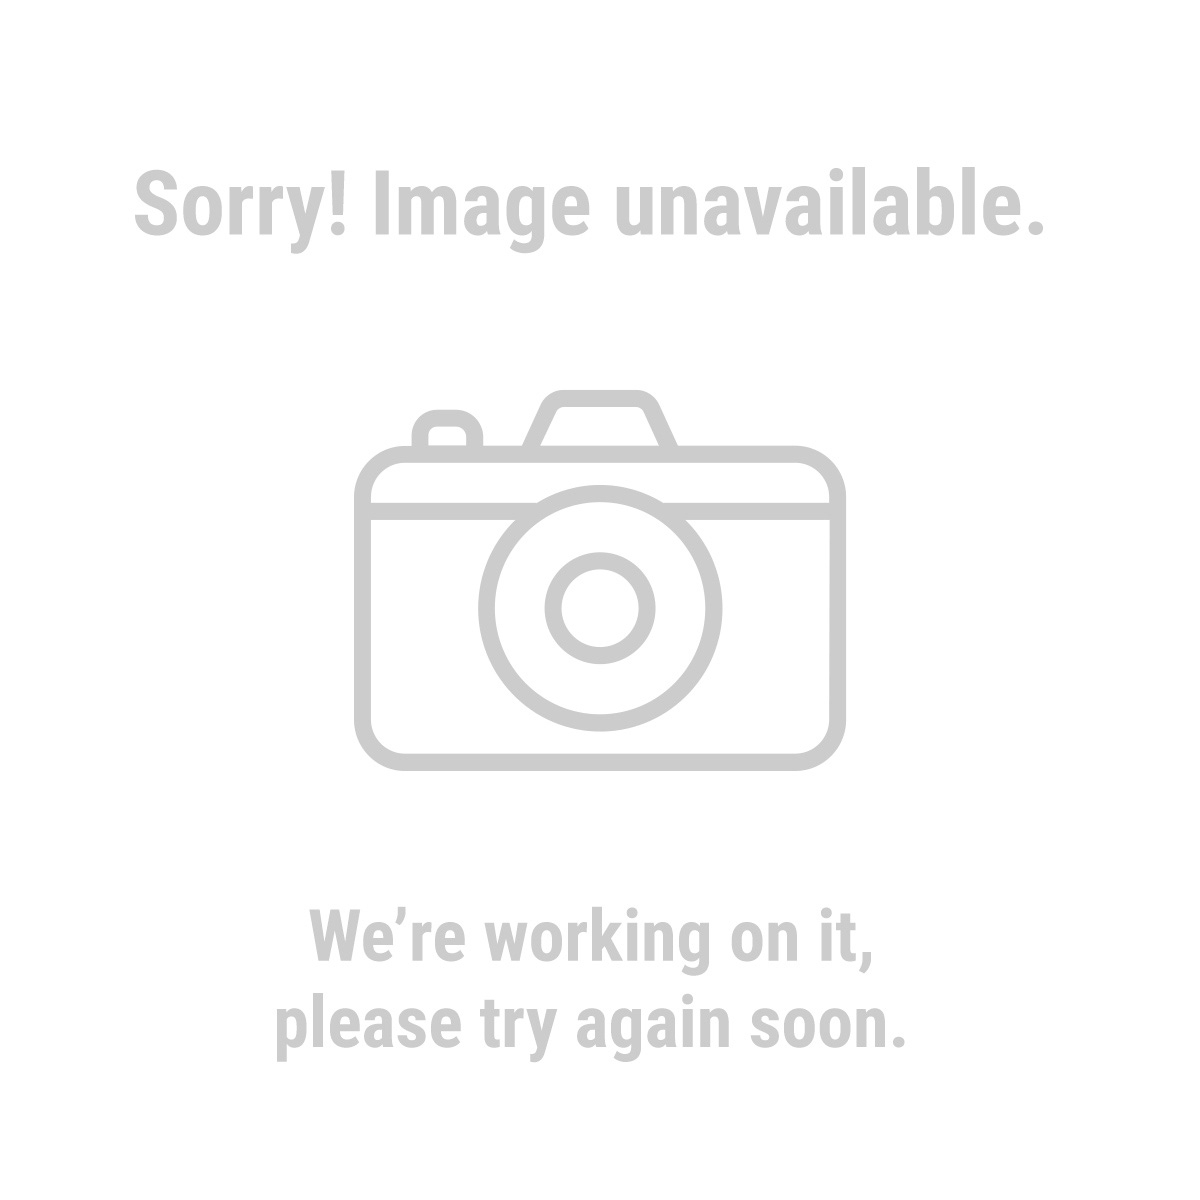 61760 4 in. Solid Polyurethane Swivel Caster